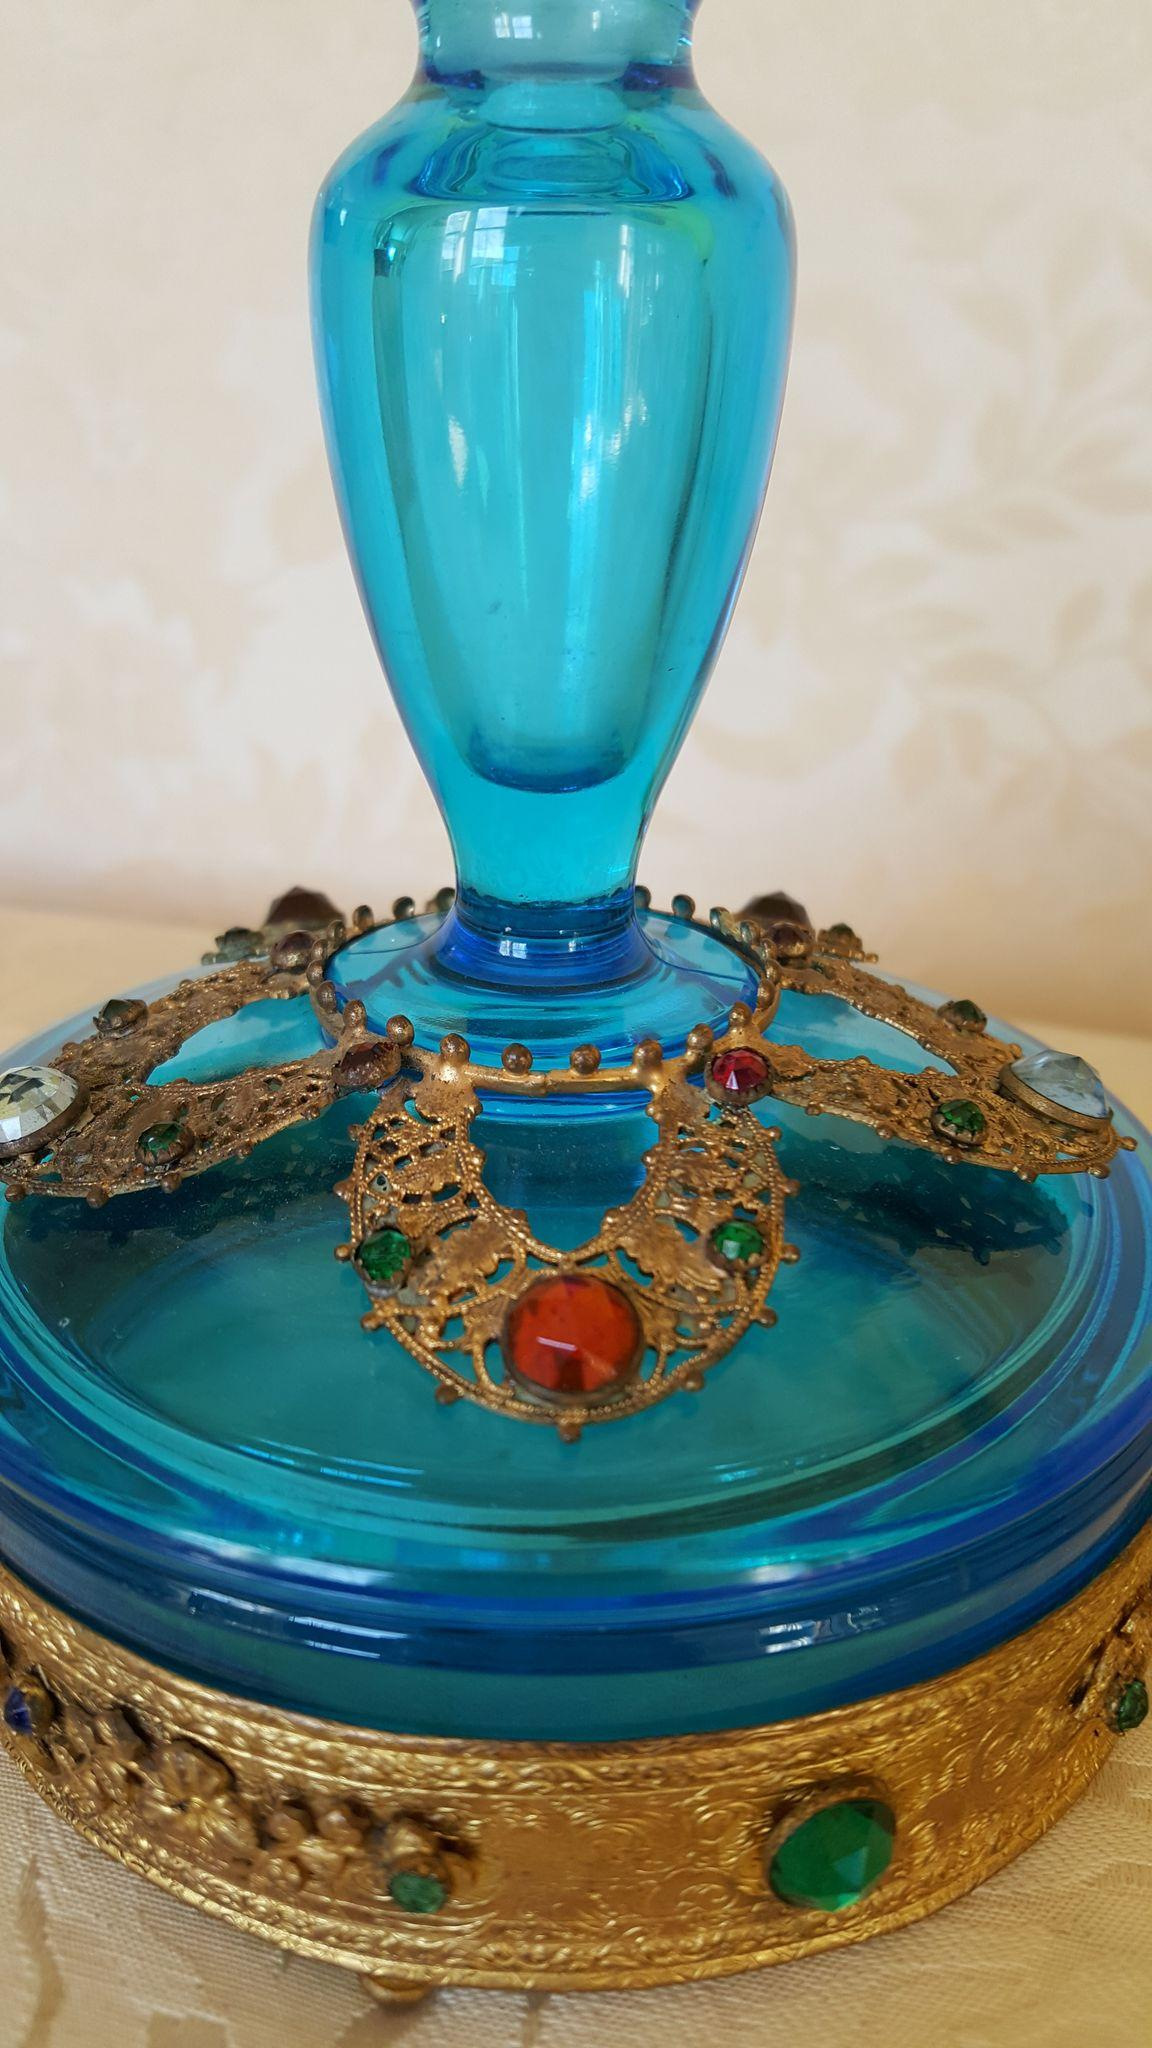 Rare Vintage 1920 S Jeweled Boxtle Blue Perfume Bottle